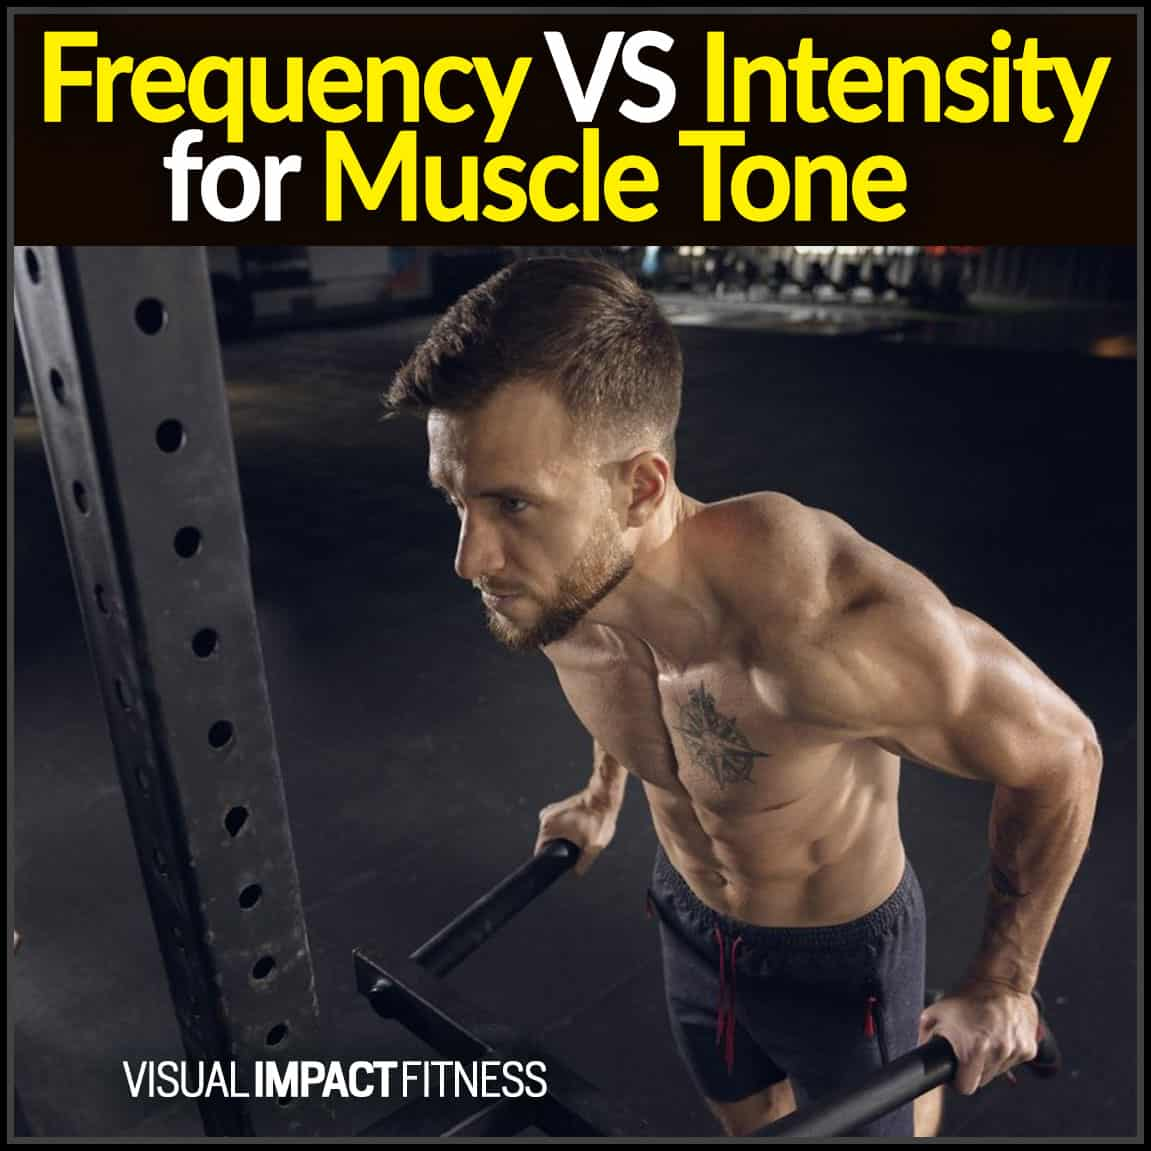 Frequency VS Intensity for Muscle Tone